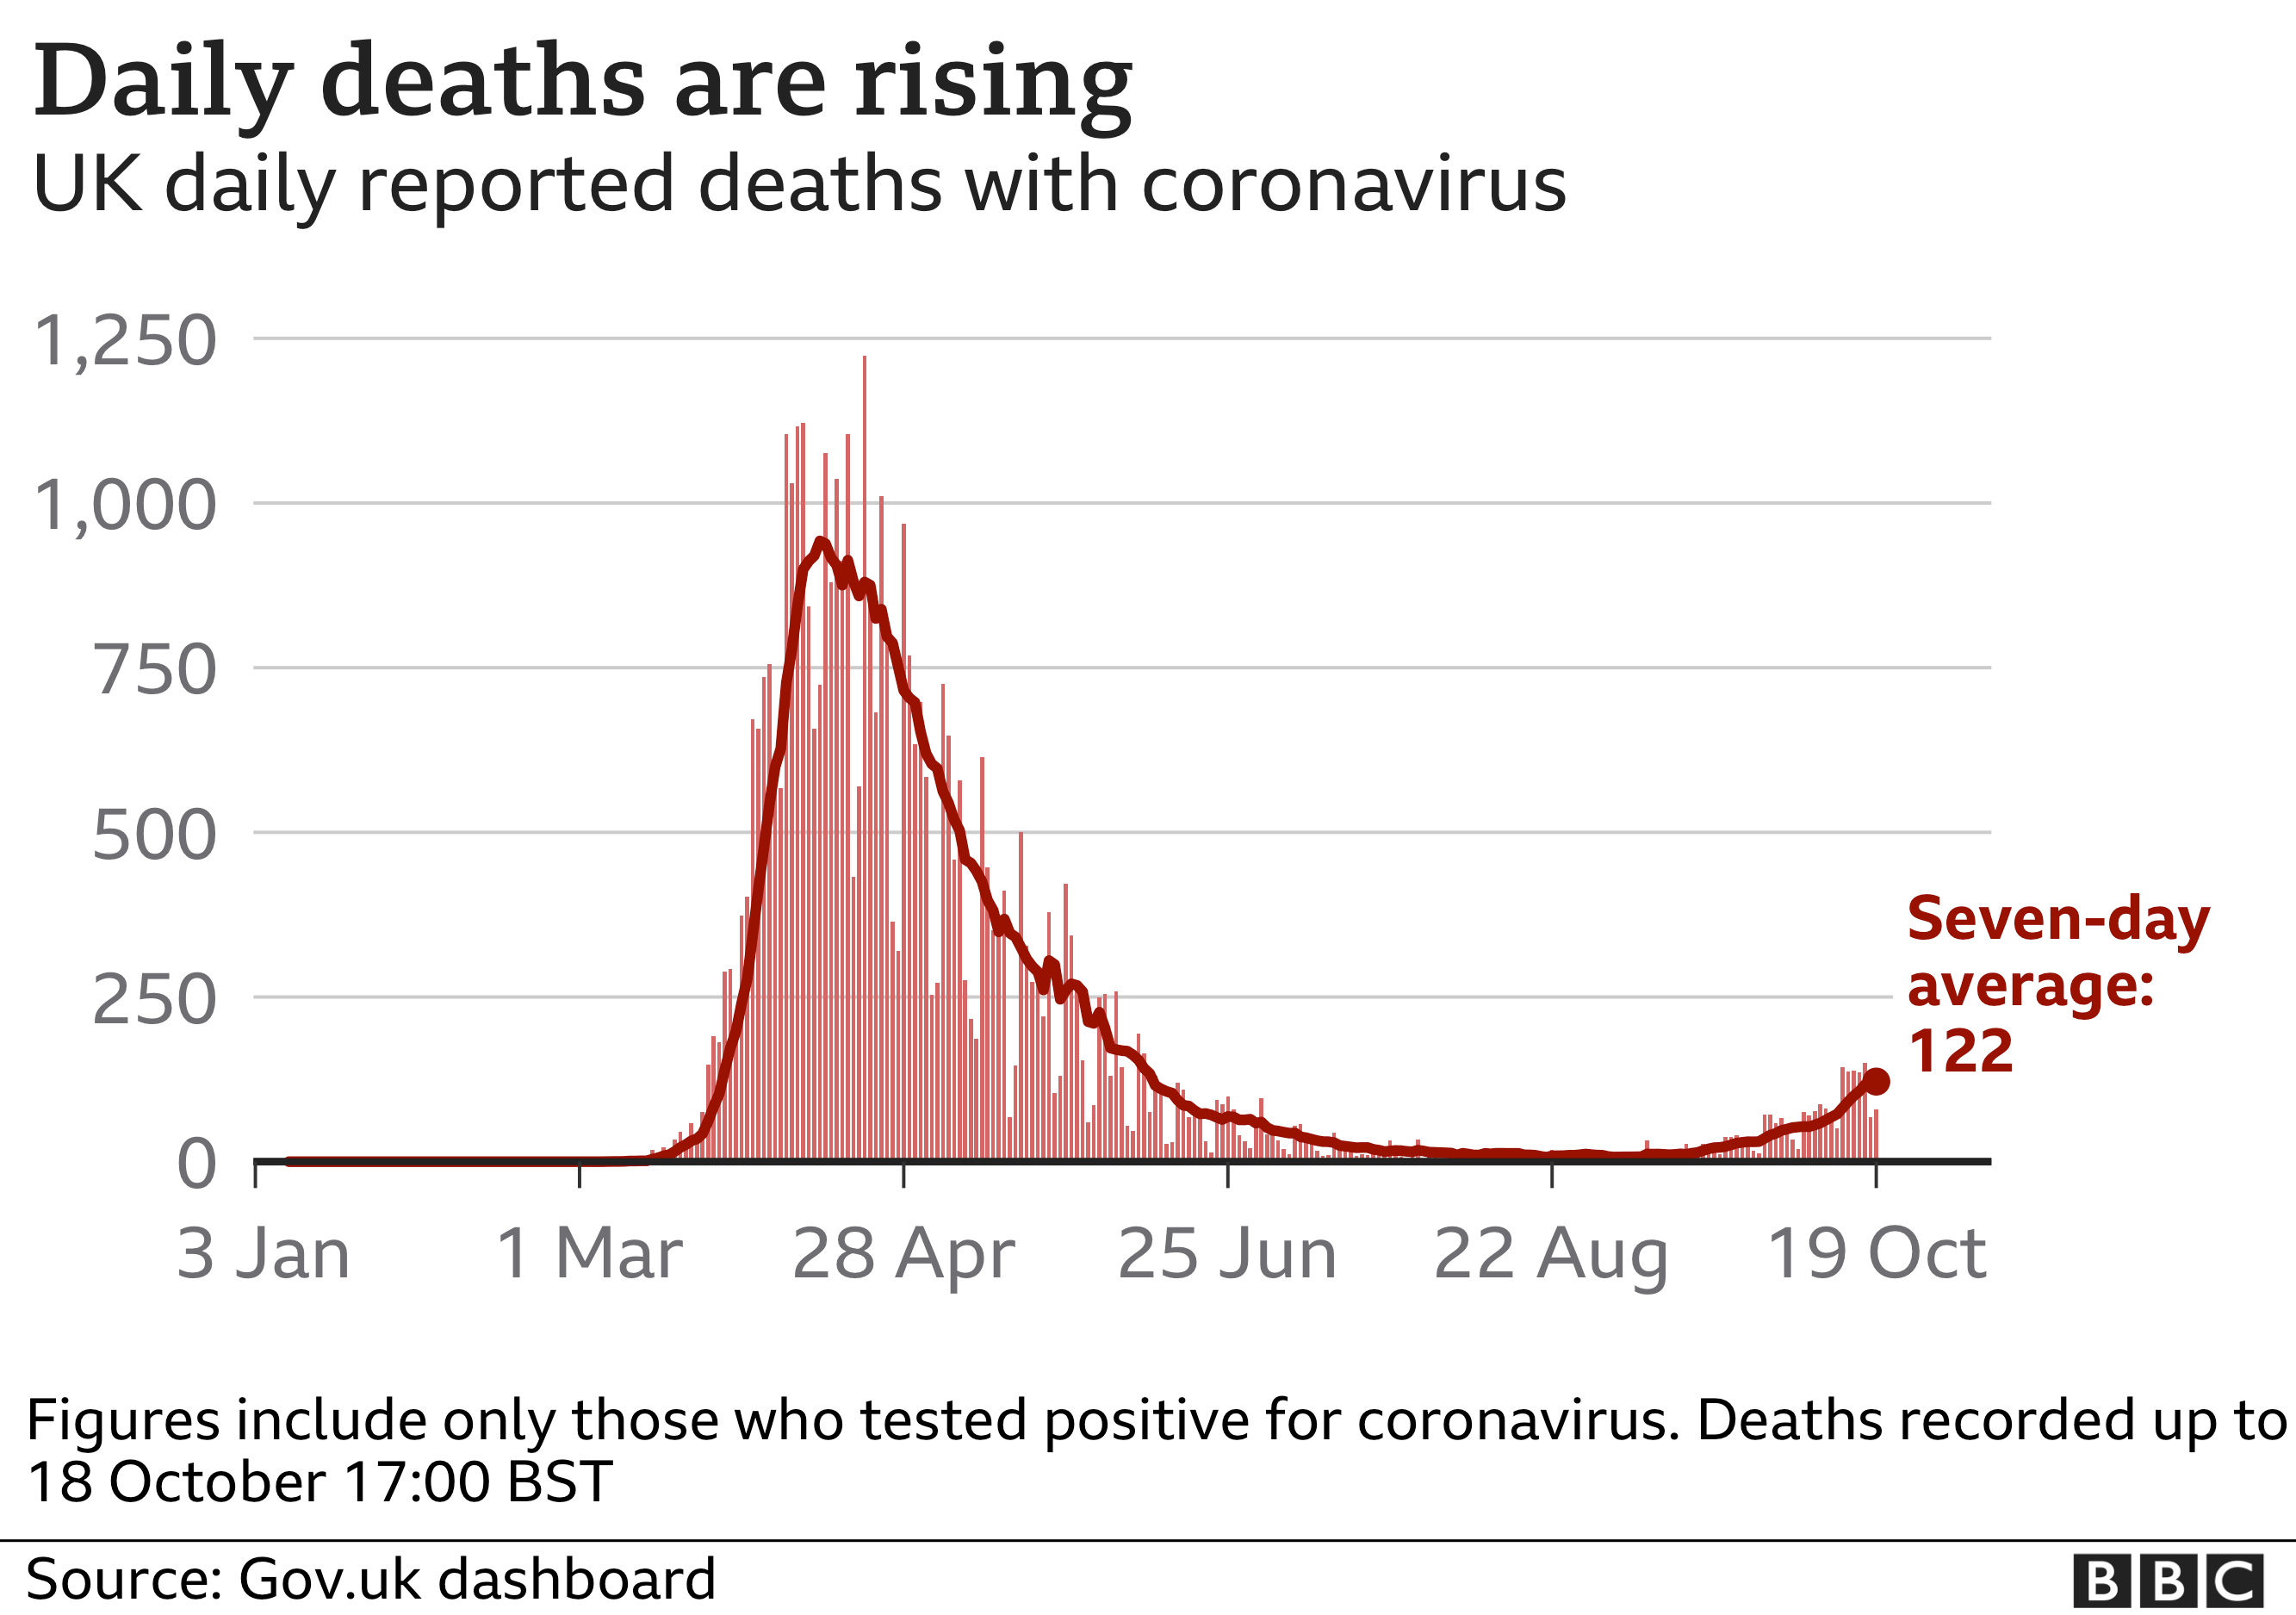 Graph showing rising numbers of deaths from Covid-19 in the UK